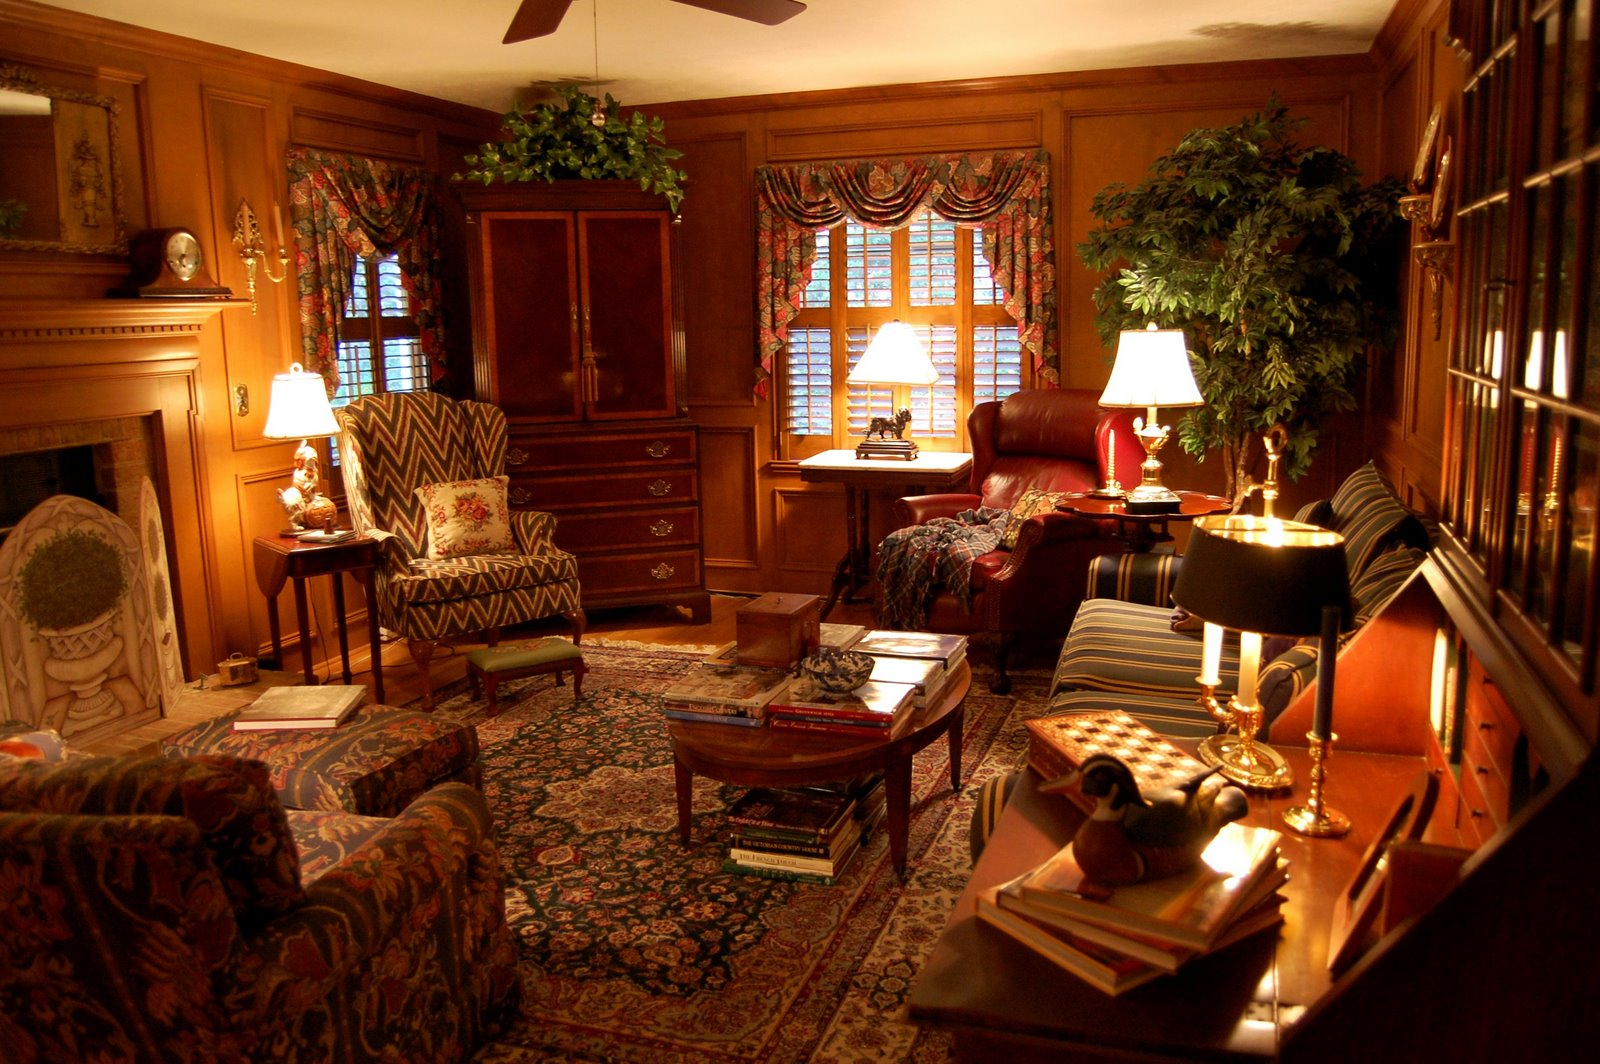 Hunting lodge interior - Home Decorating